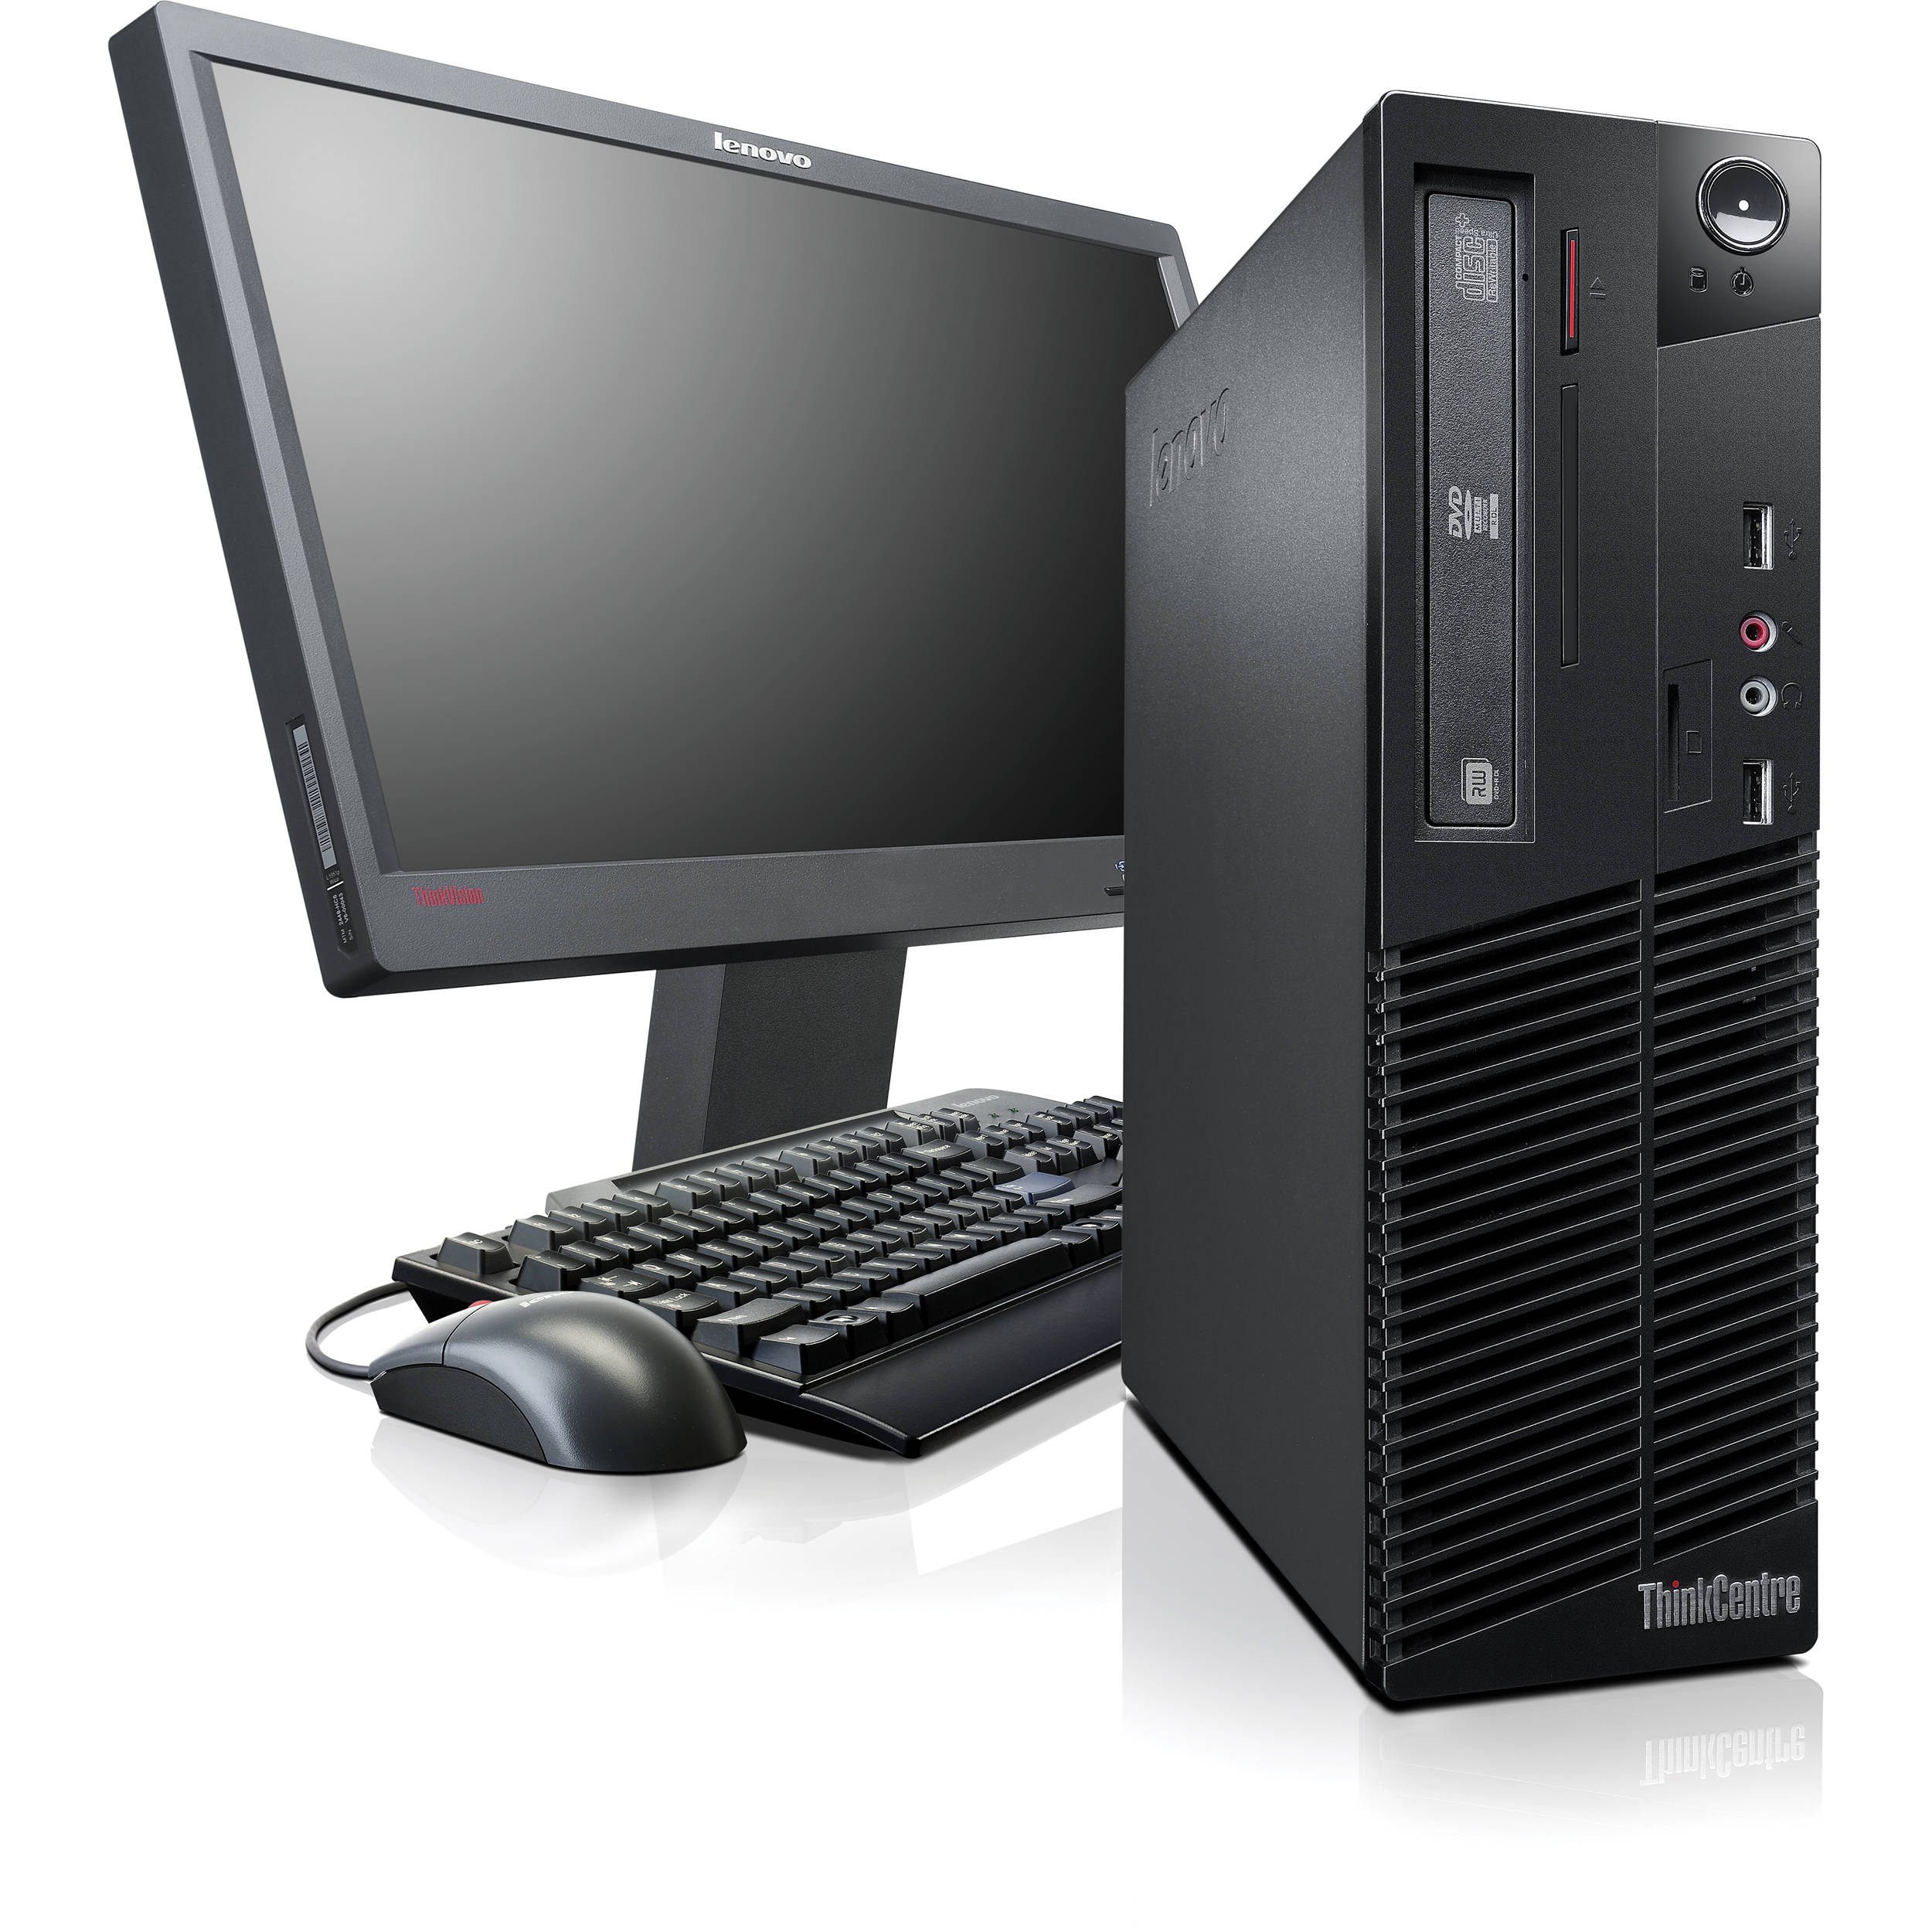 Lenovo Thinkcentre M70e Small Desktop Computer Black Monitor Not Included